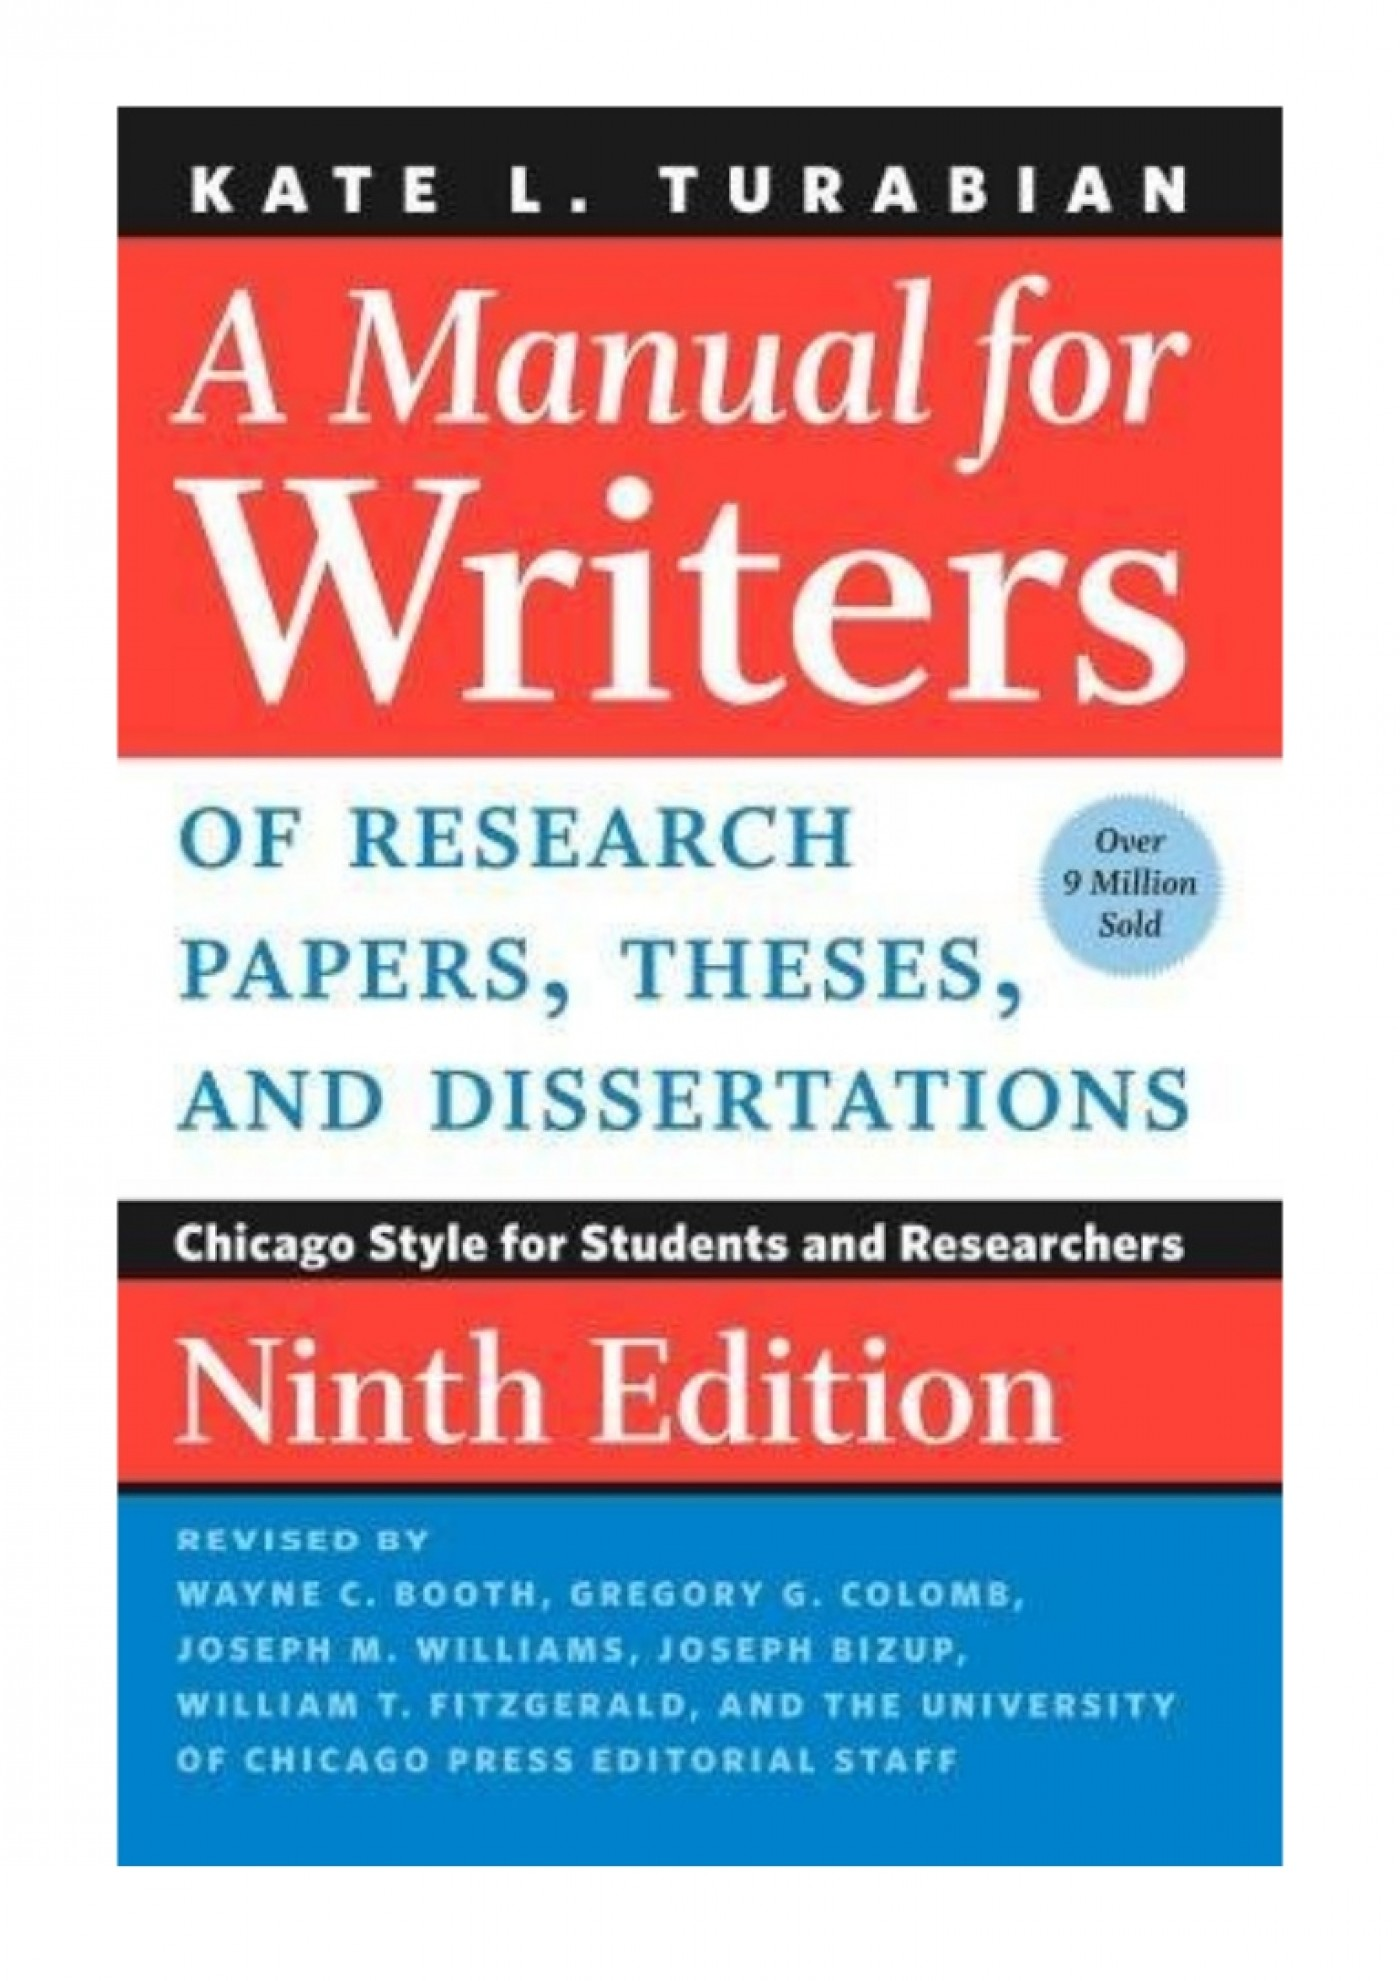 010 Manual For Writers Of Research Papers Theses And Dissertations Paper 022643057x Amanualforwritersofresearchpapersthesesanddissertationsnintheditionbykatel Thumbnail Magnificent A Amazon 9th Edition 8th 13 1400